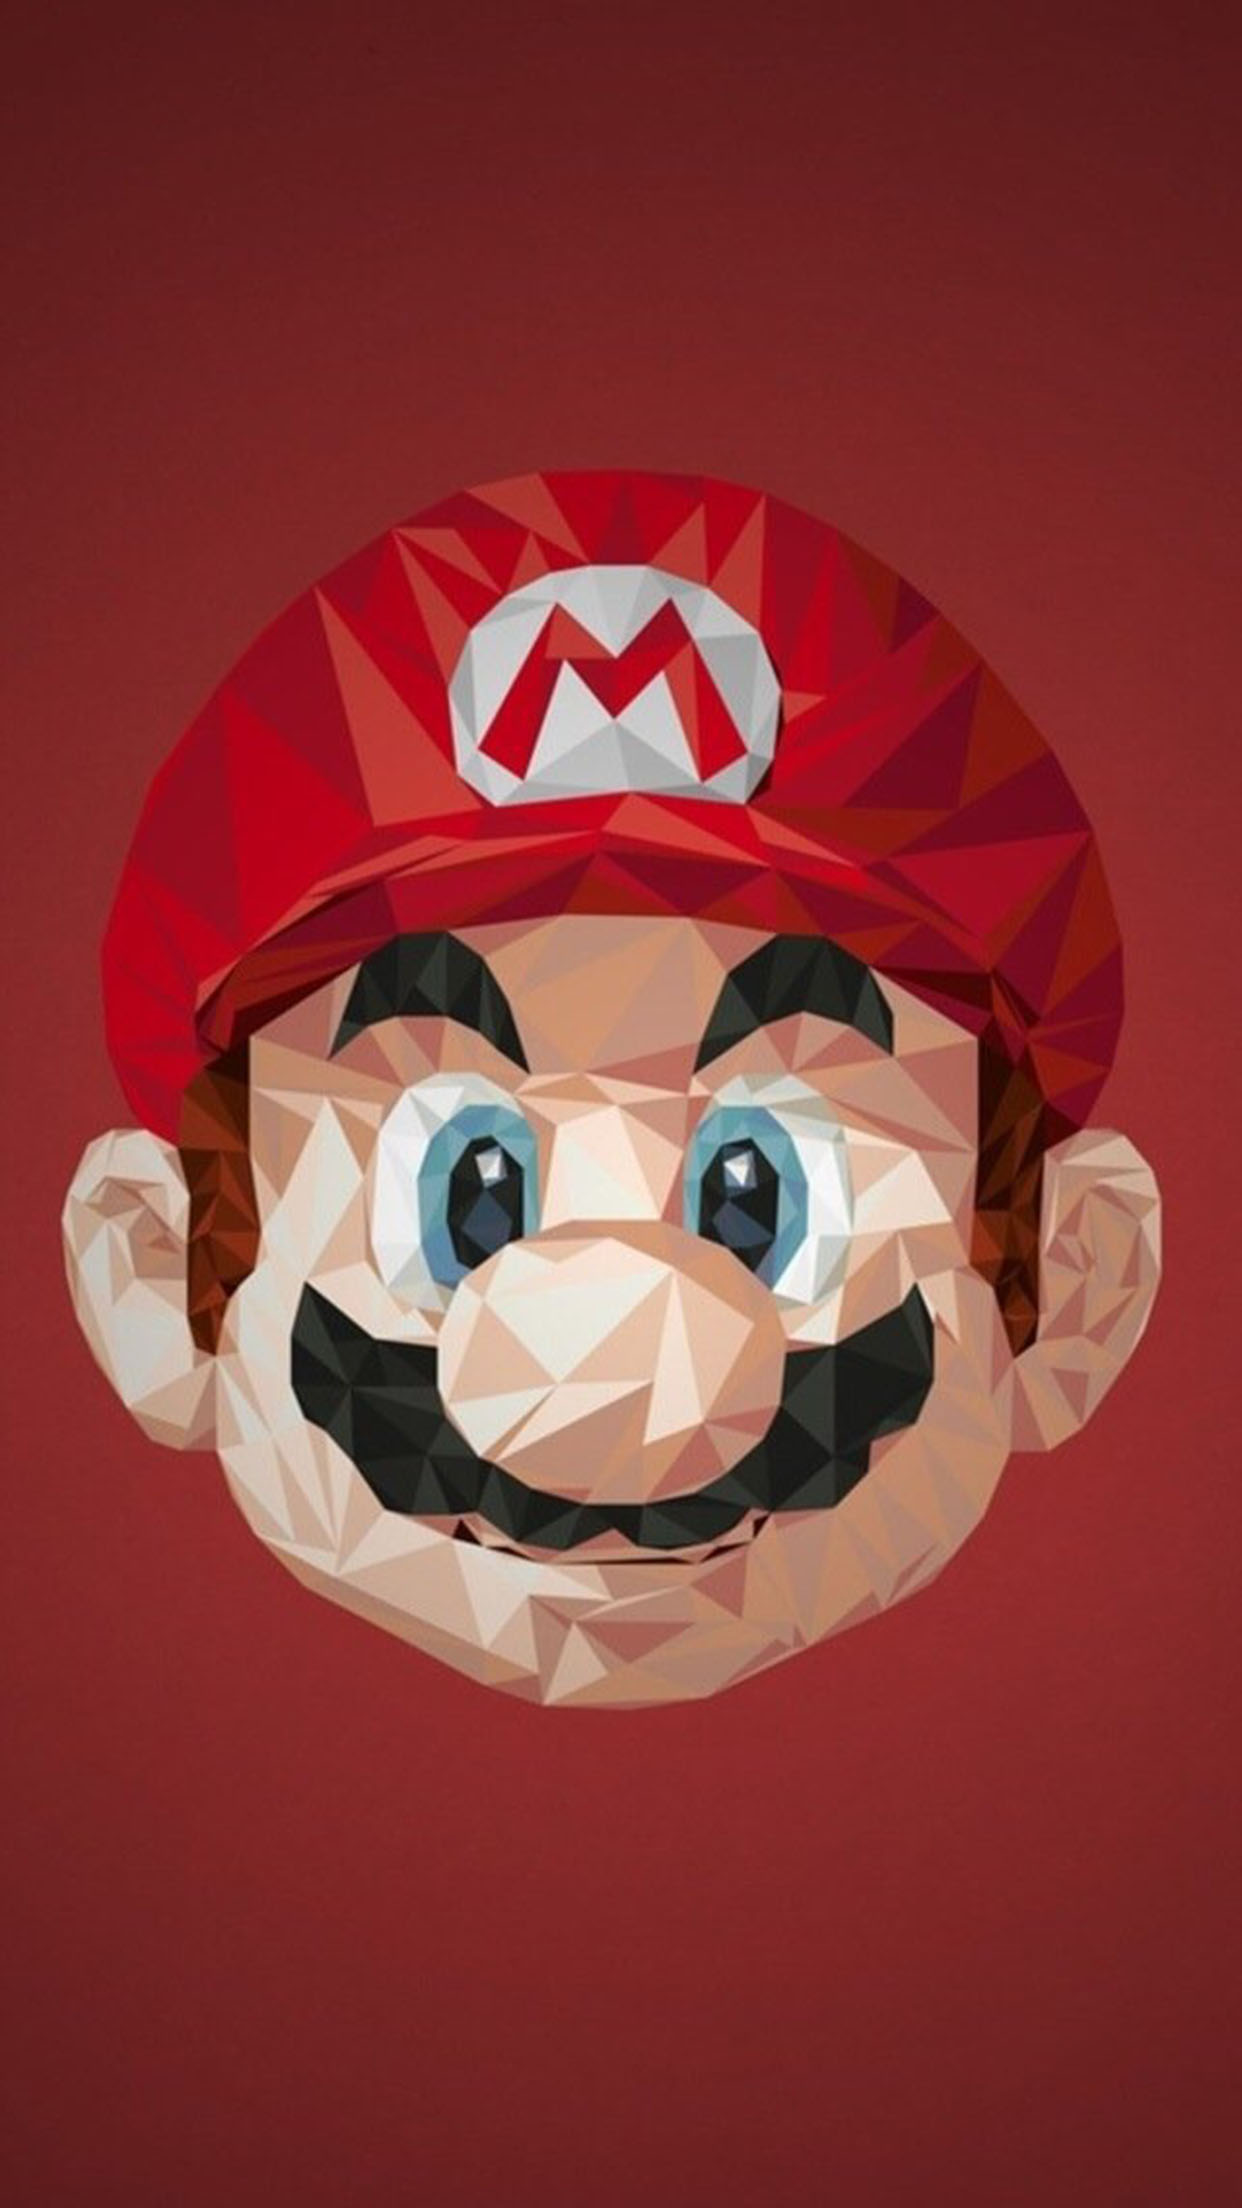 Mario Mario 1 3Wallpapers iPhone Parallax Mario 1